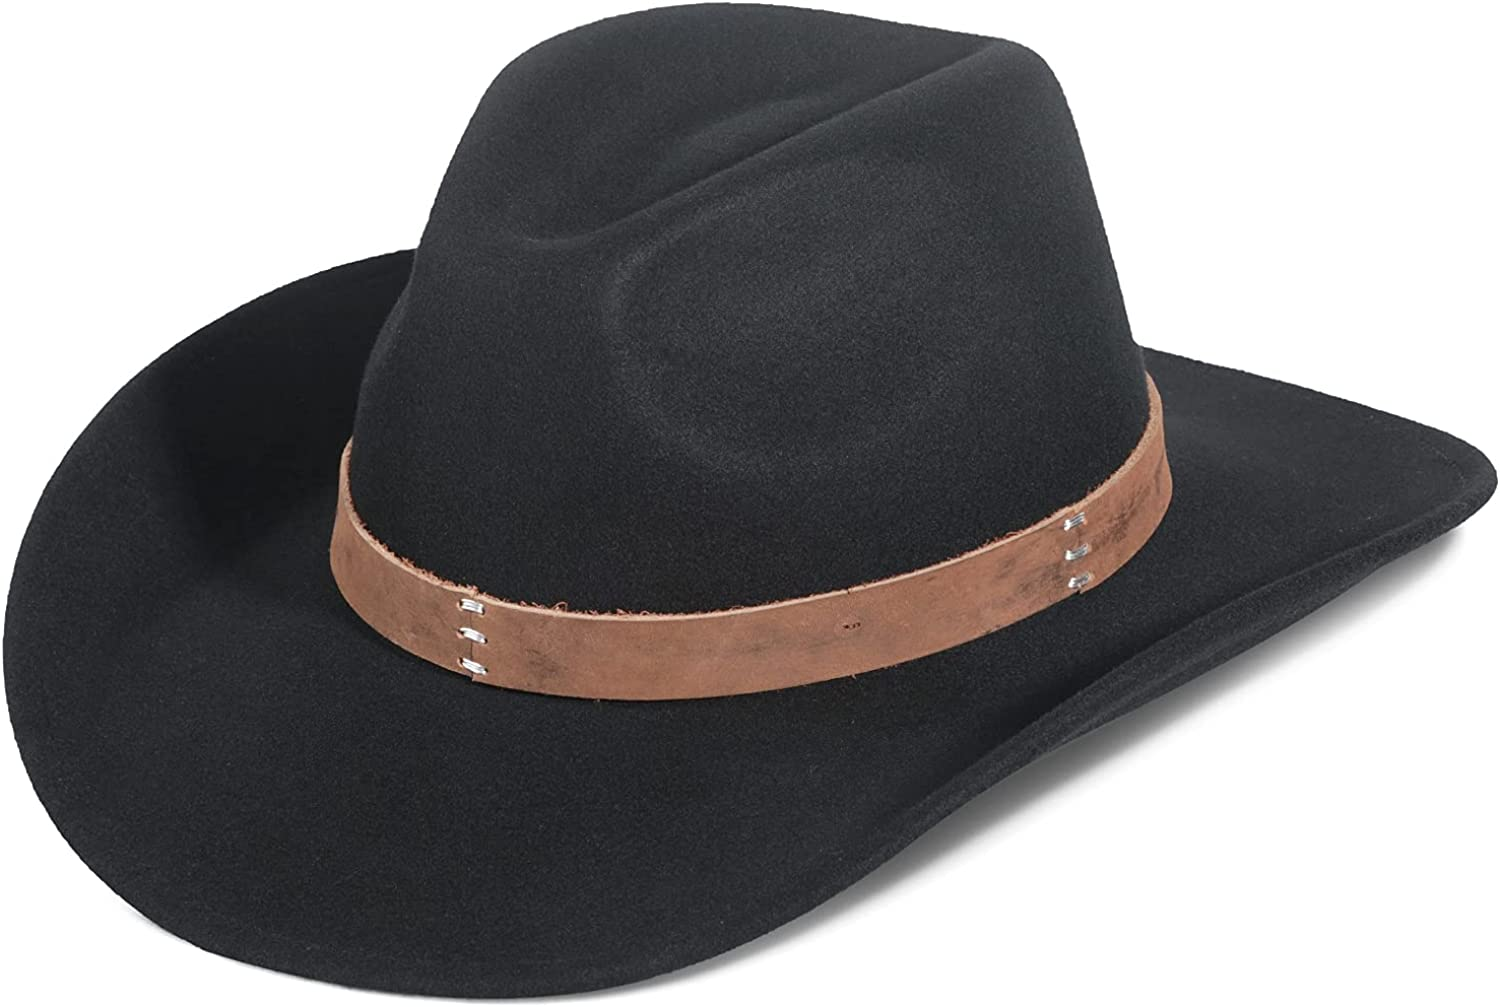 Cowboy Hat, Wool Felt Hats for Men and Women Classic Pinch Front Wide Brim Fedora Western Outback Outdoor Hat with Belt